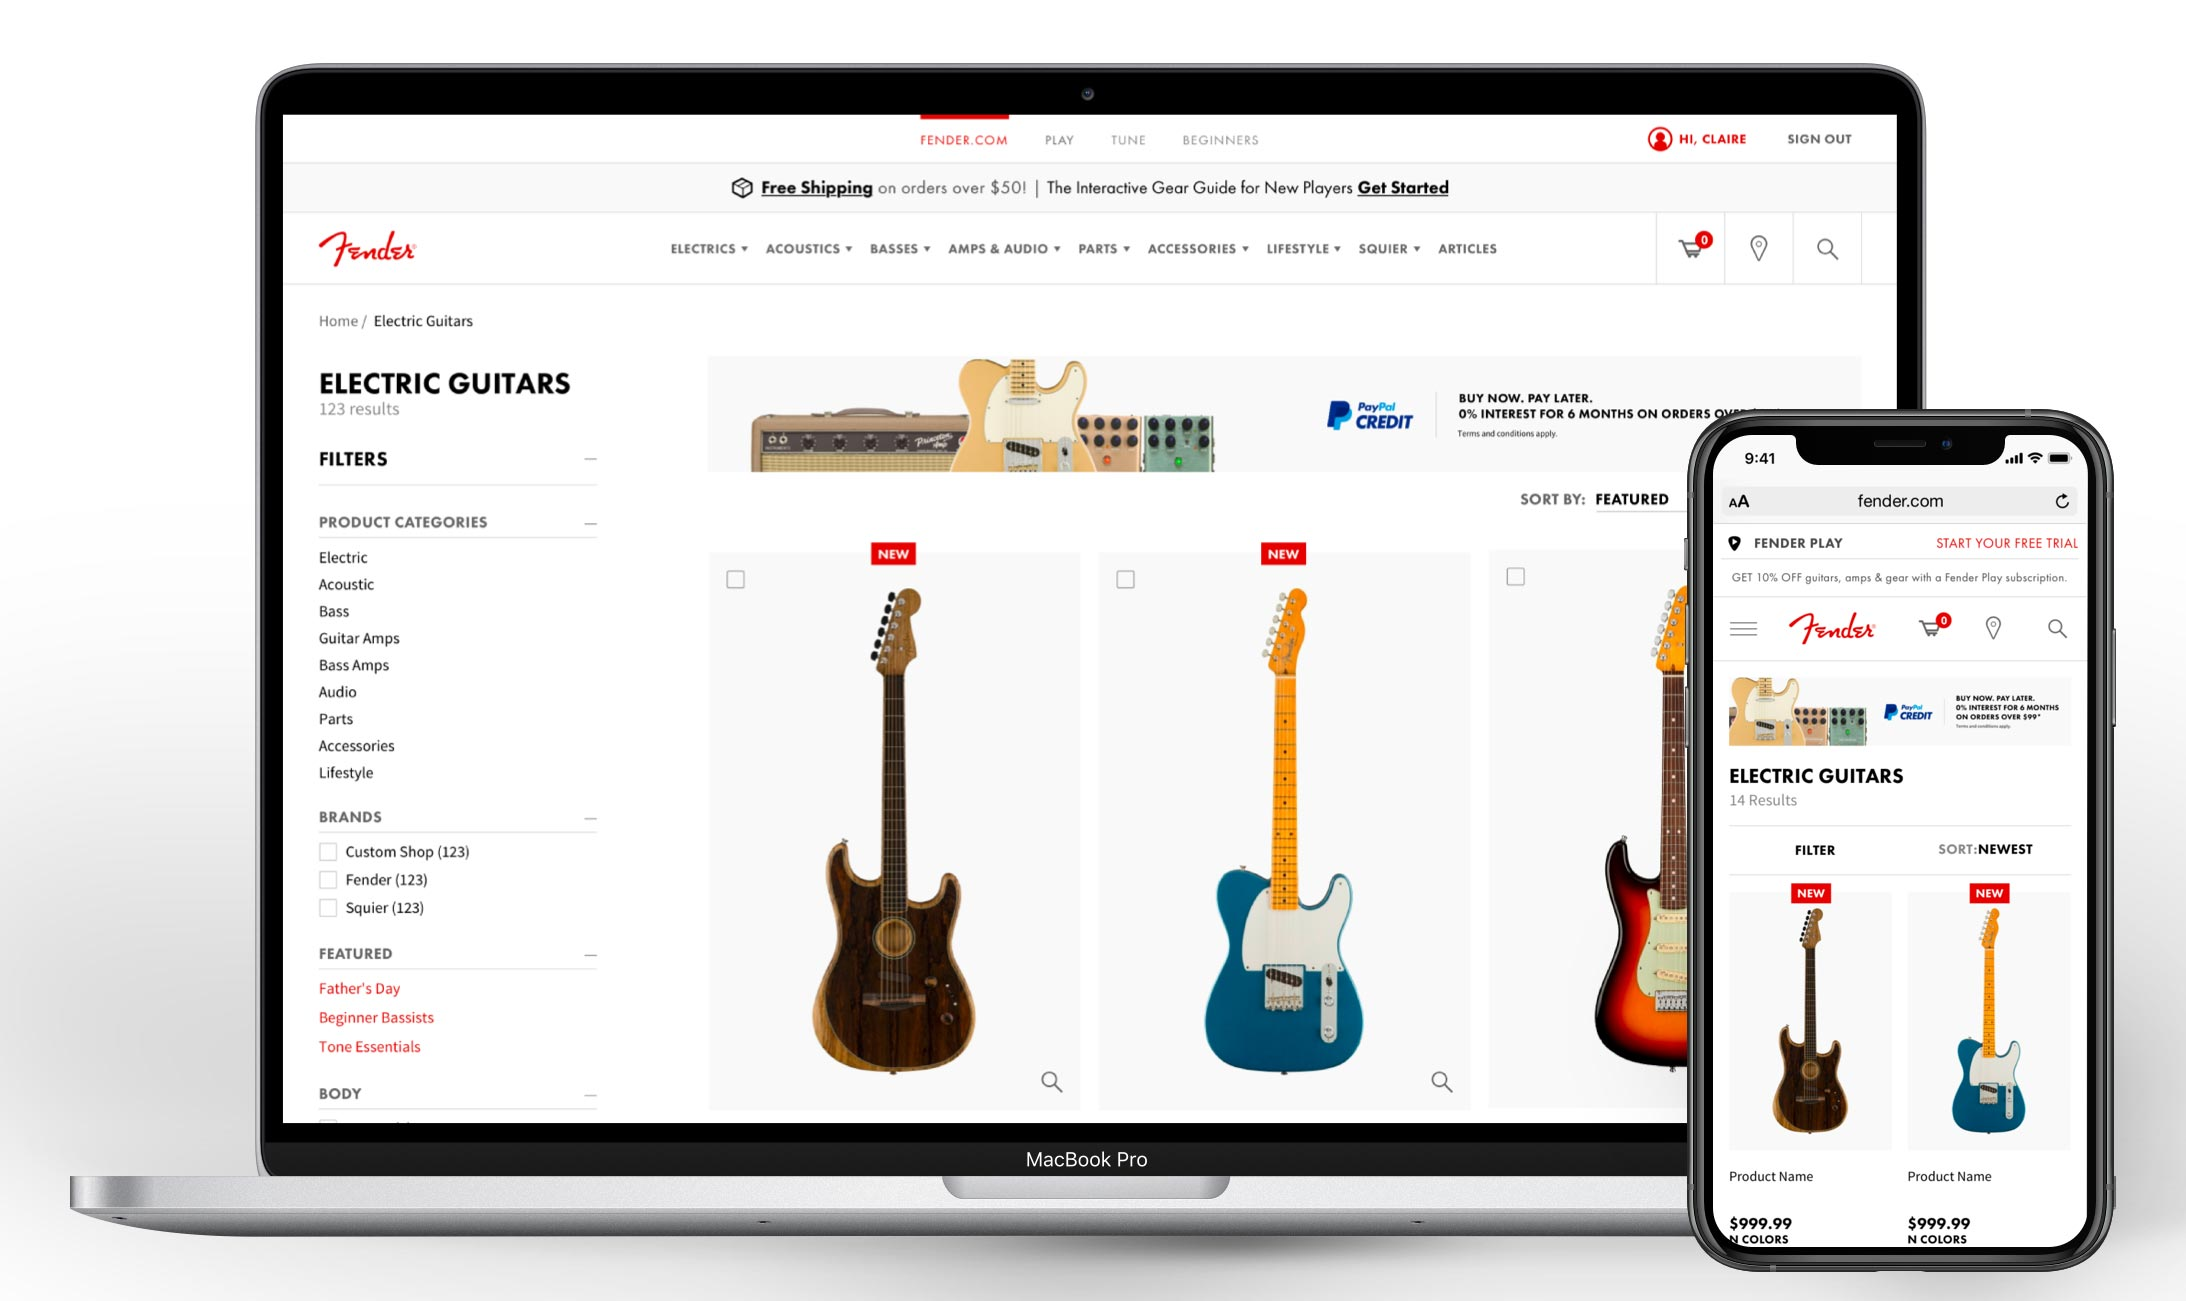 Product listing page on Fender.com